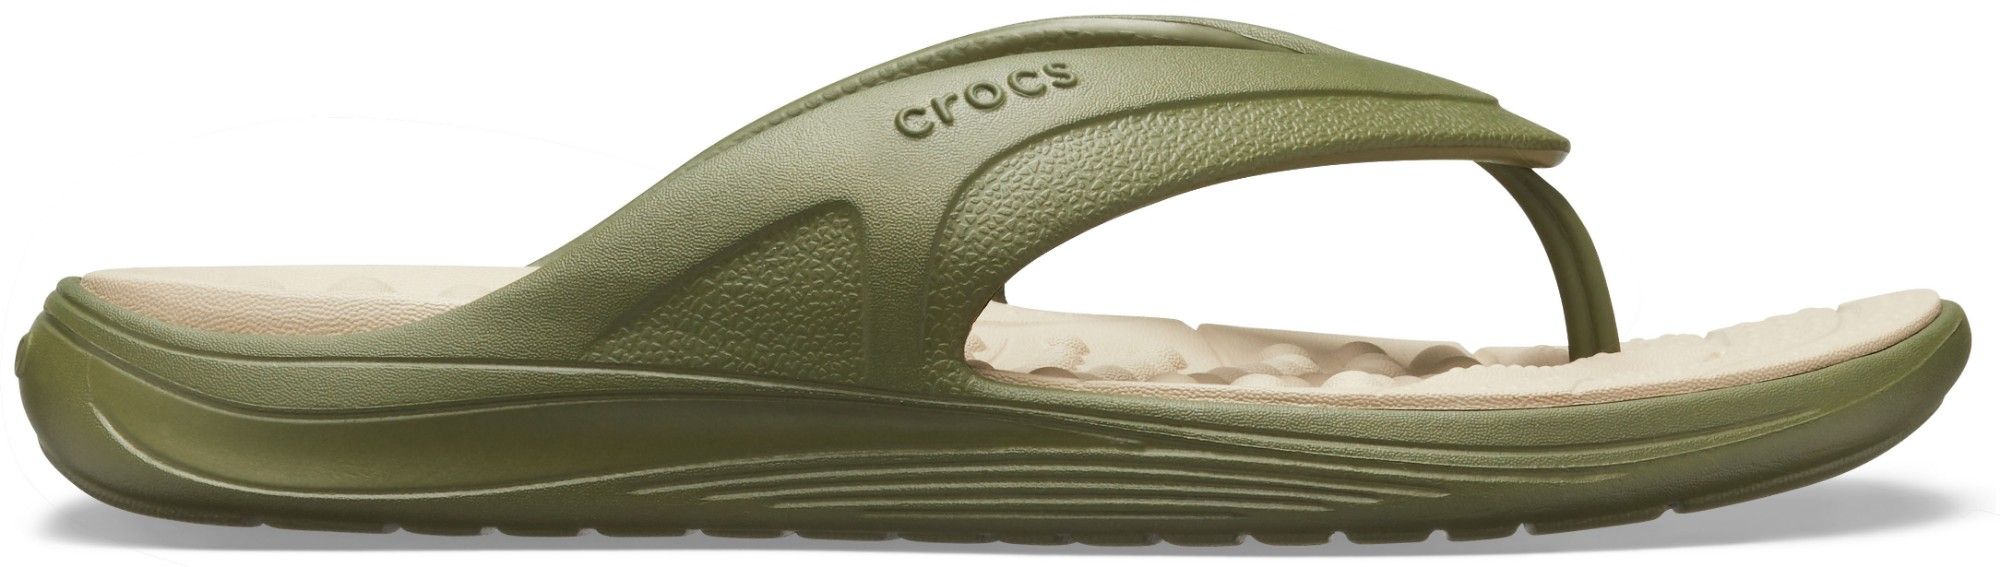 Crocs™ Reviva Flip Army Green/Cobblestone 37,5